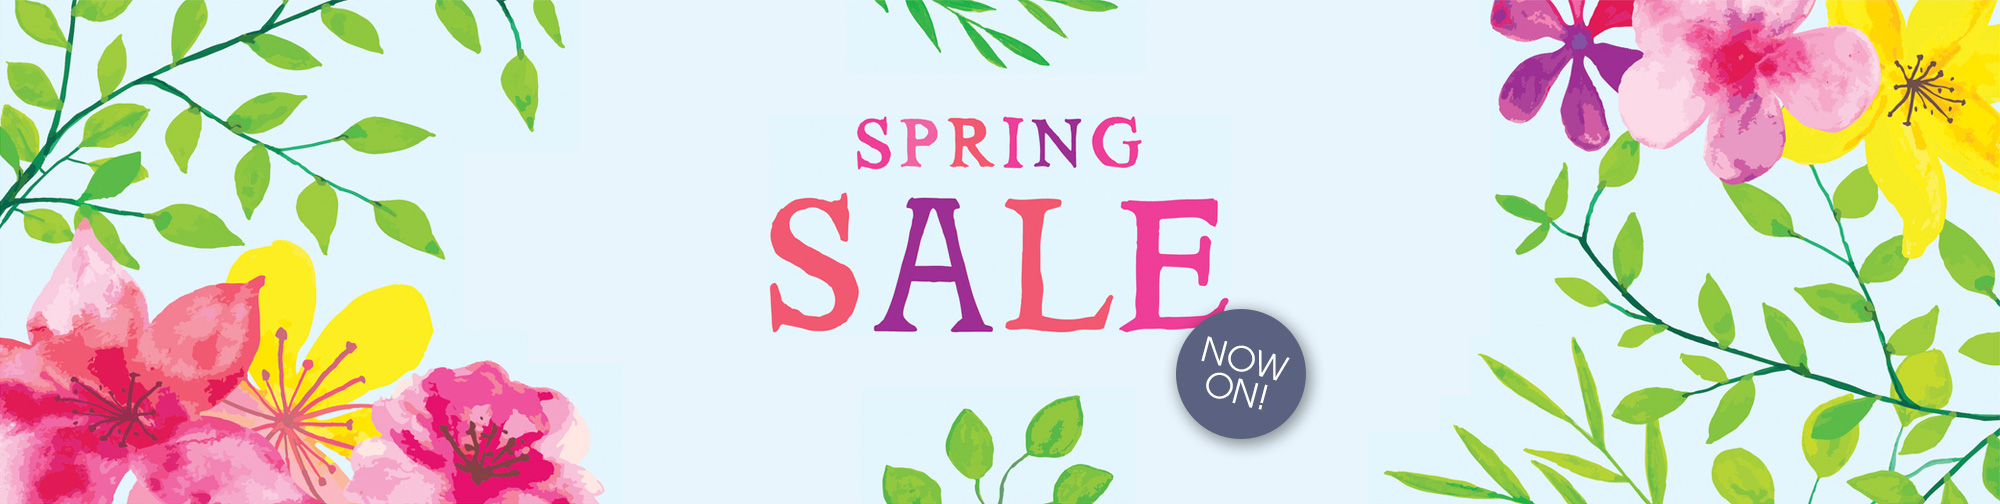 Spring Sale Now On – Apr 2021